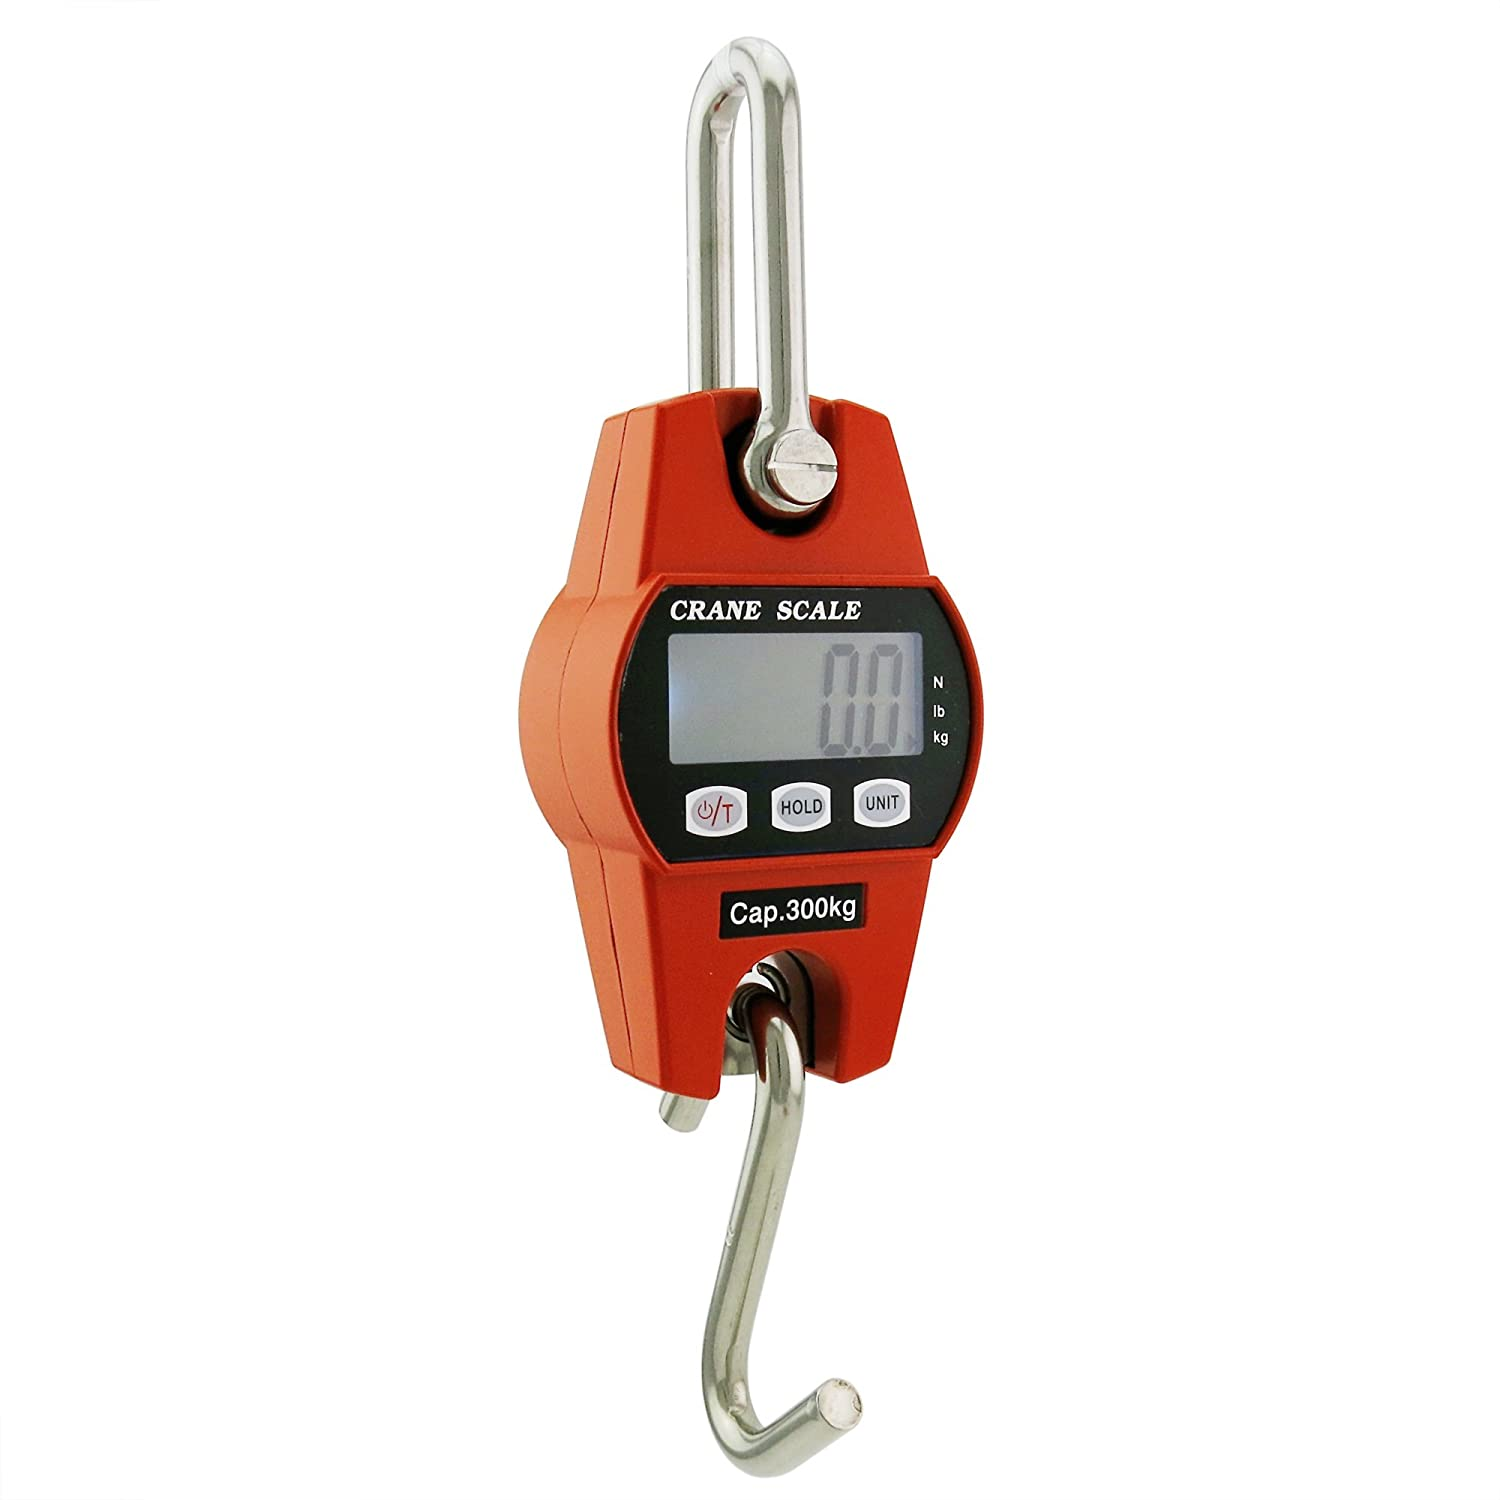 Outmate Mini Digital Crane Scale 300kg 600lbs With Ledaluminium Tach Adapter Wiring Alloy Caseorange Business Industry Science